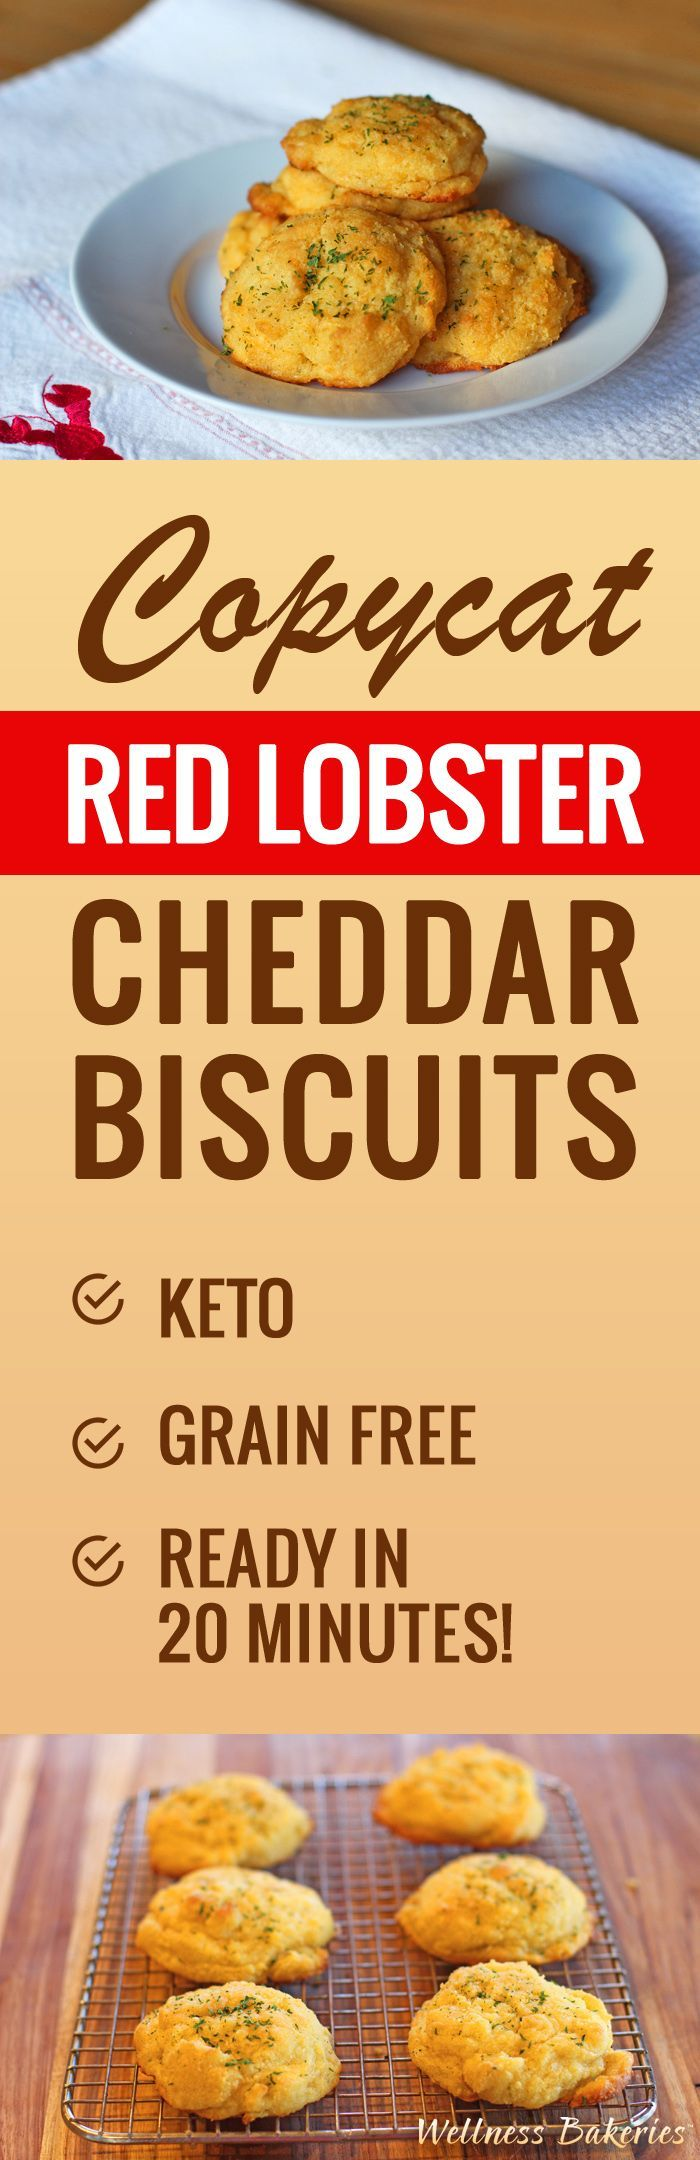 If you love Red Lobster Biscuits, but not the grain, carbs and trans fats, you'll love our keto riff on this classic.